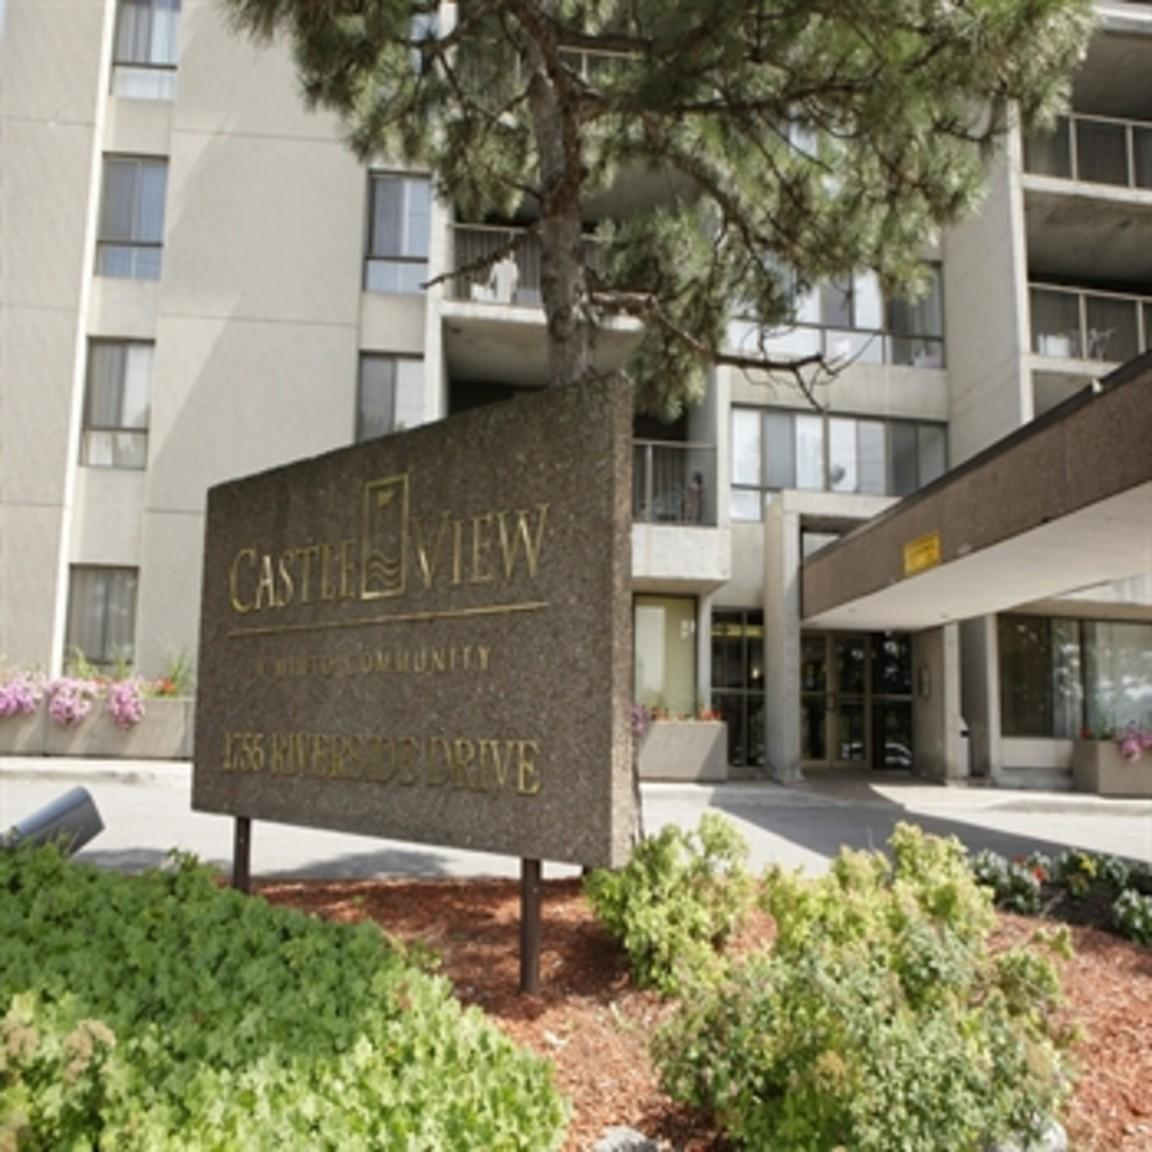 Midtown Crossing Apartments: Castleview Apartments, Ottawa ON